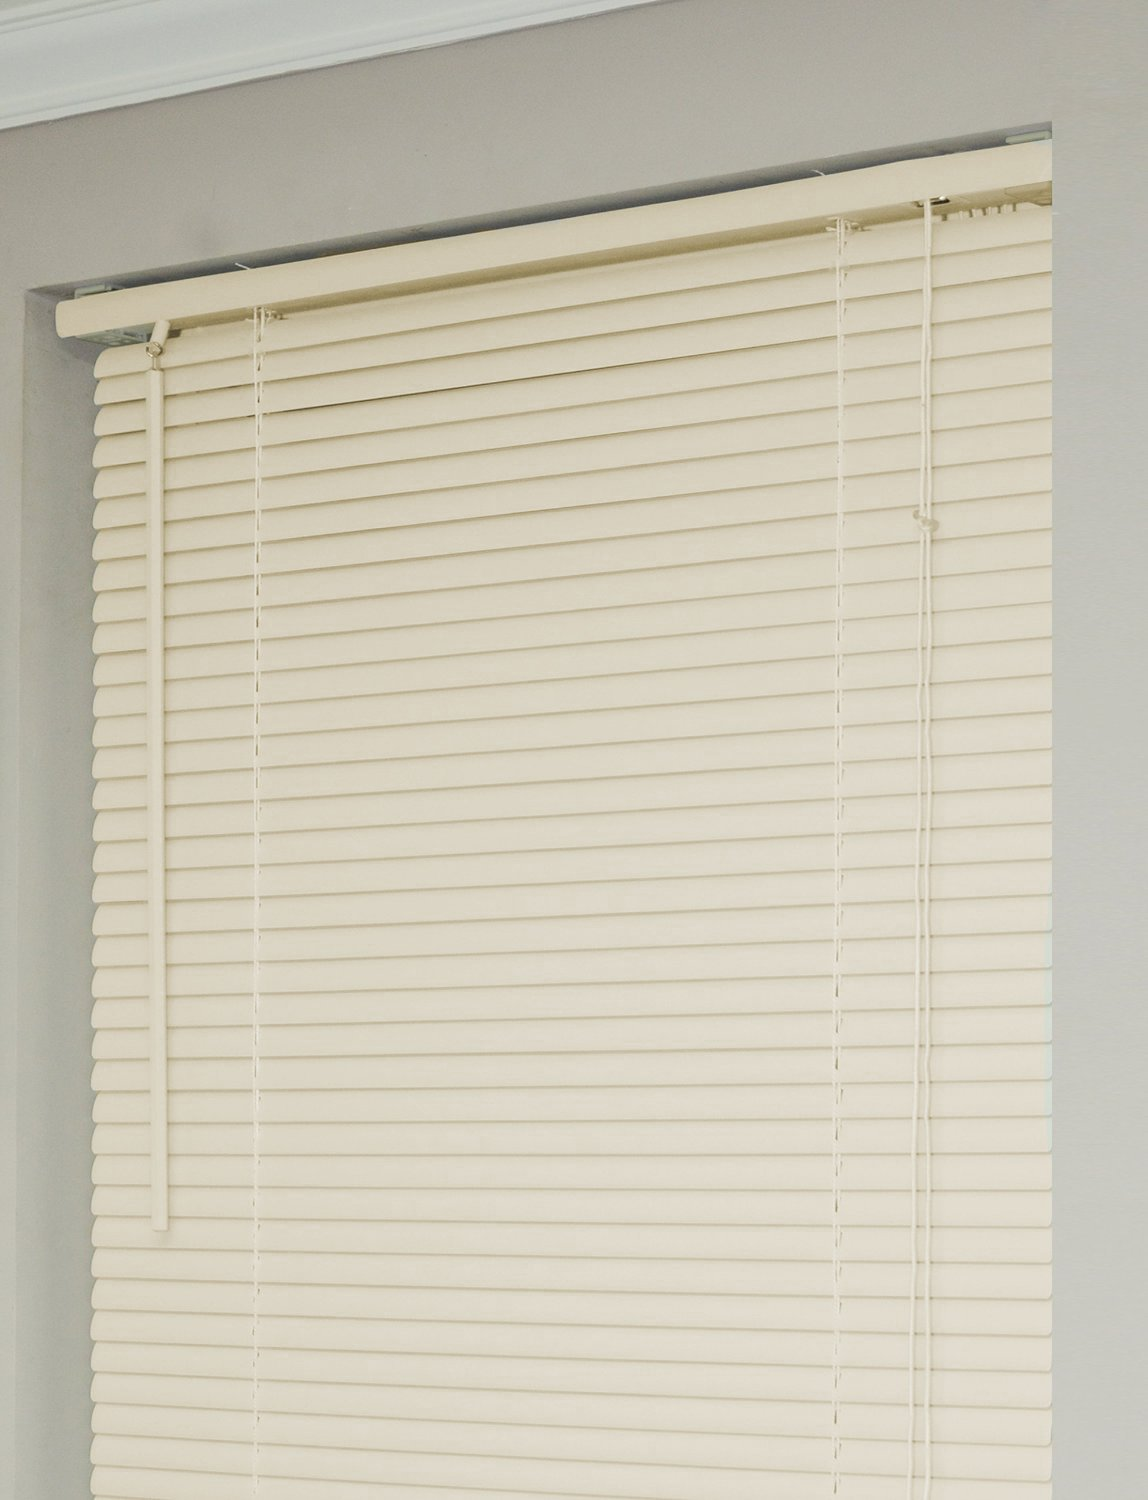 Achim Home Furnishings 1-Inch Wide Window Blinds, 23 by 64-Inch, White Achim Imports VY2364WH06